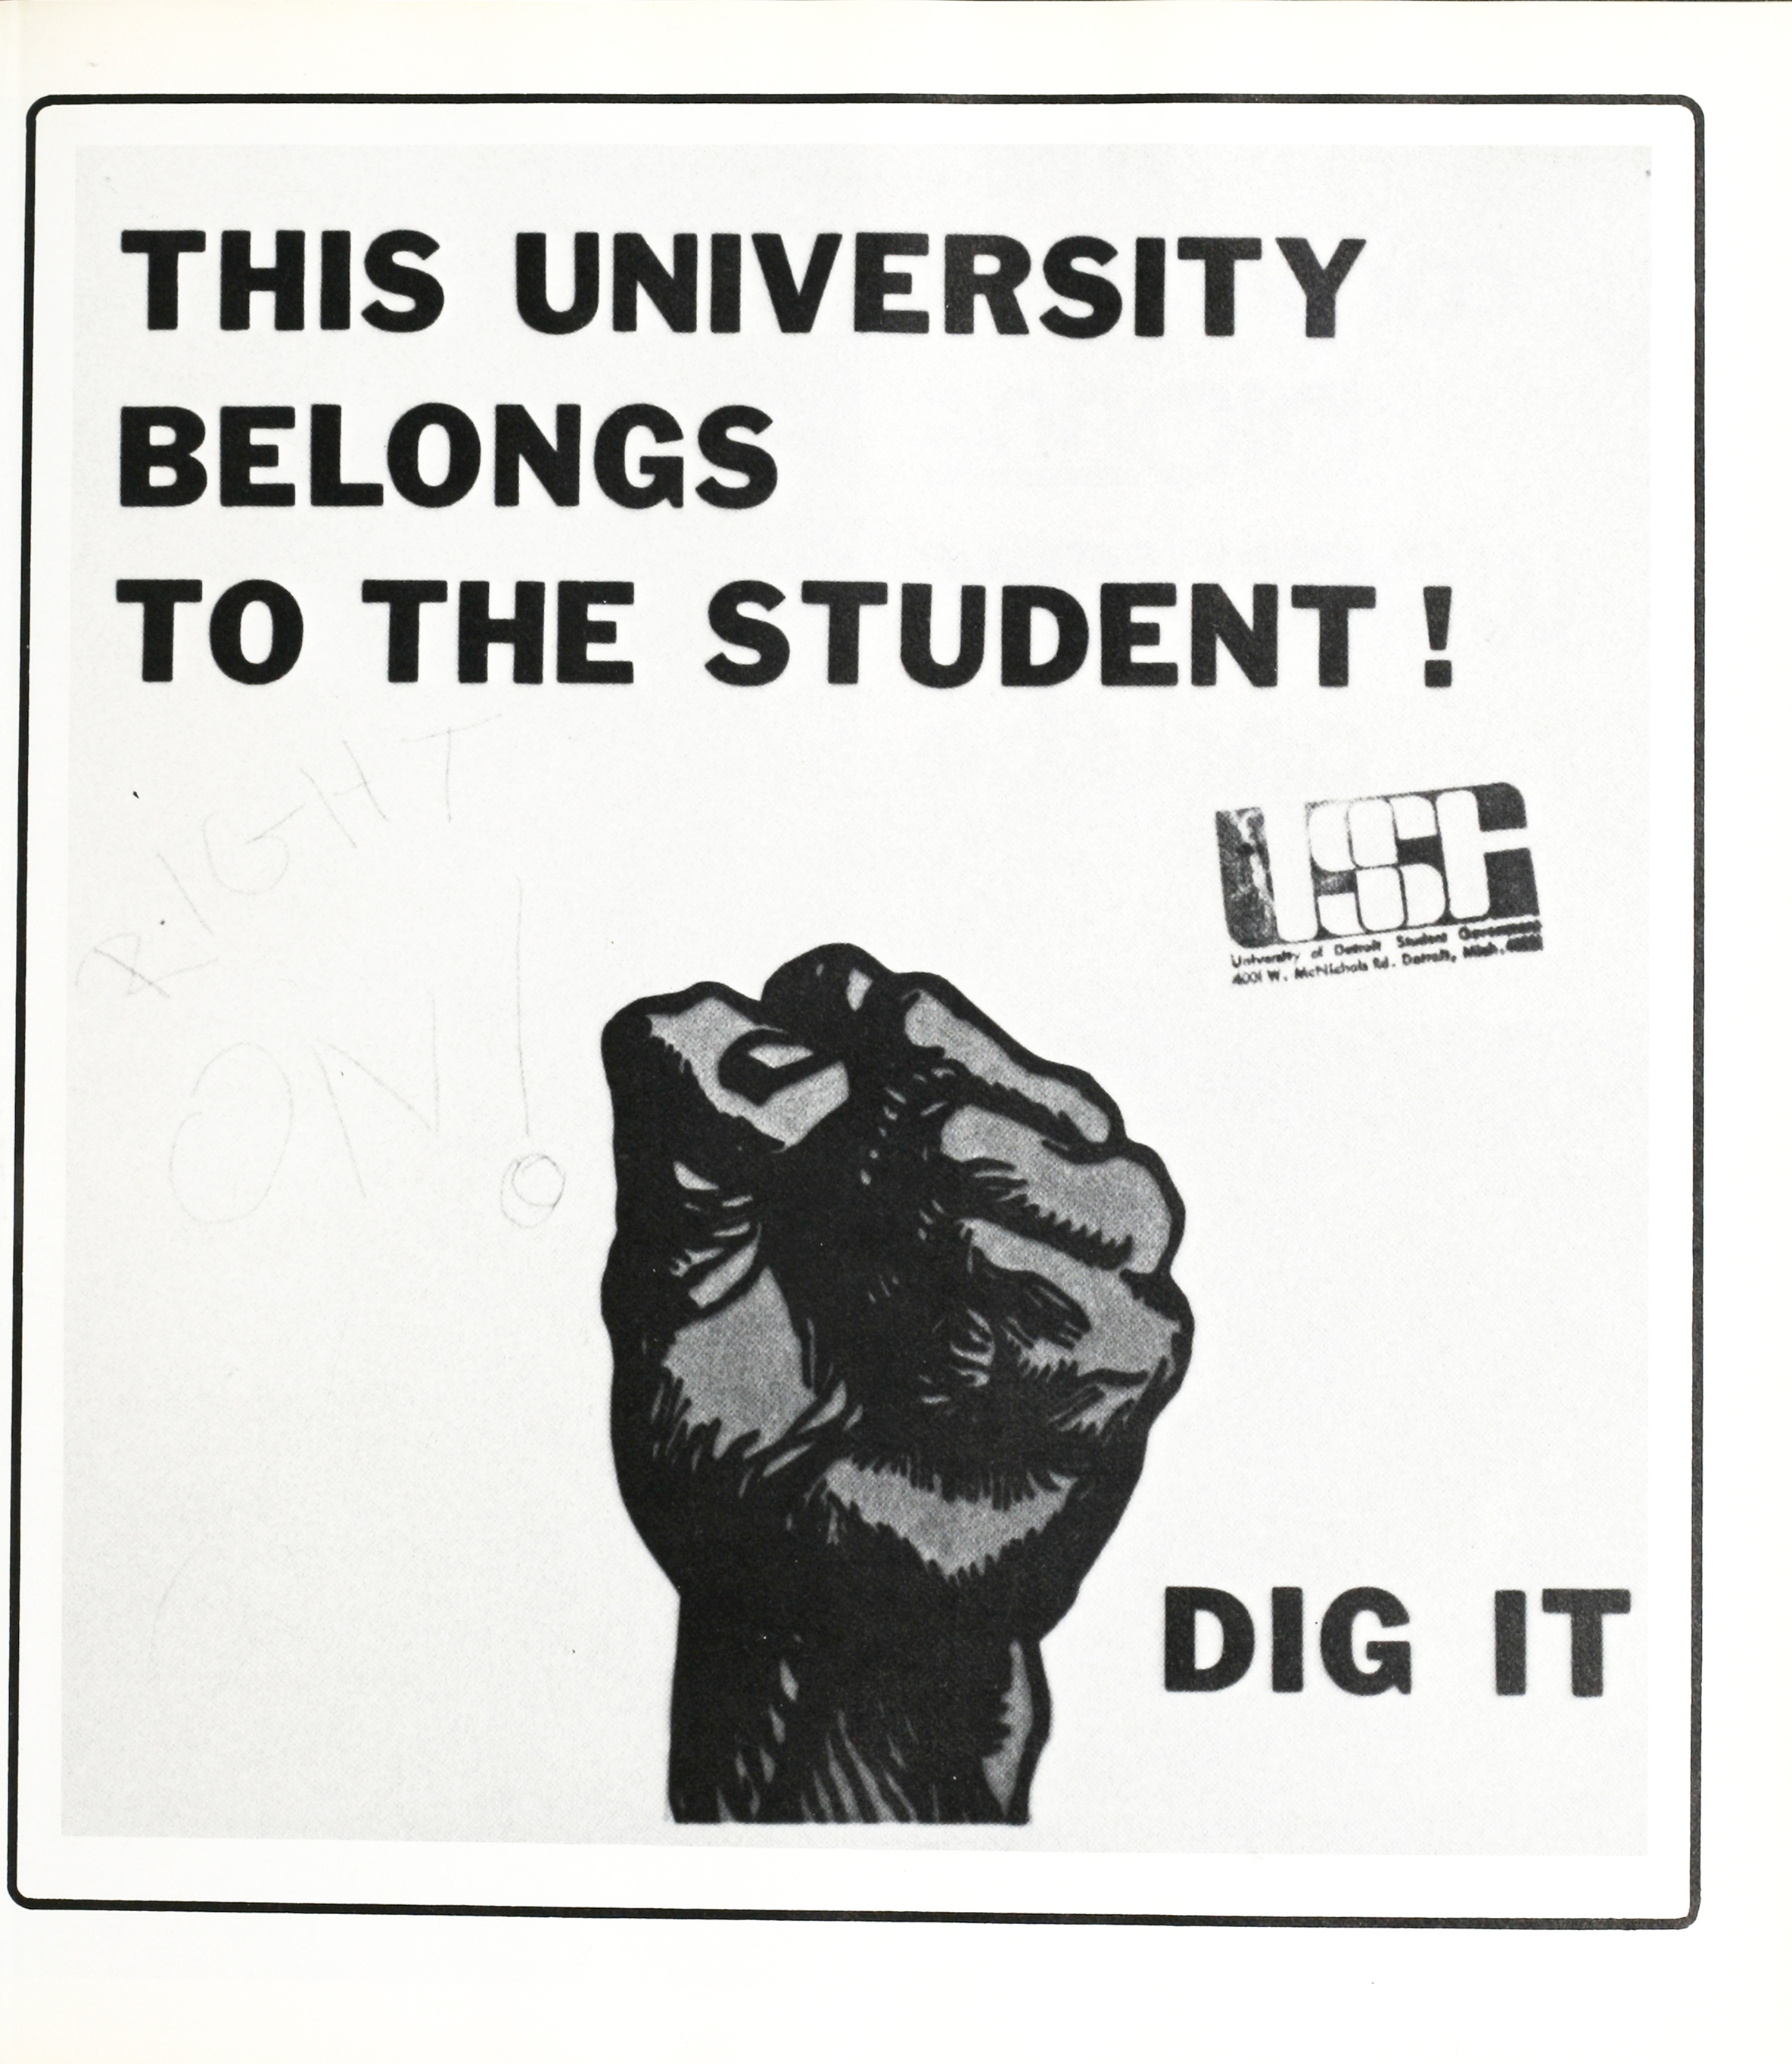 THIS UNIVERSITY BELONGS TO THE STUDENT ! DIG IT